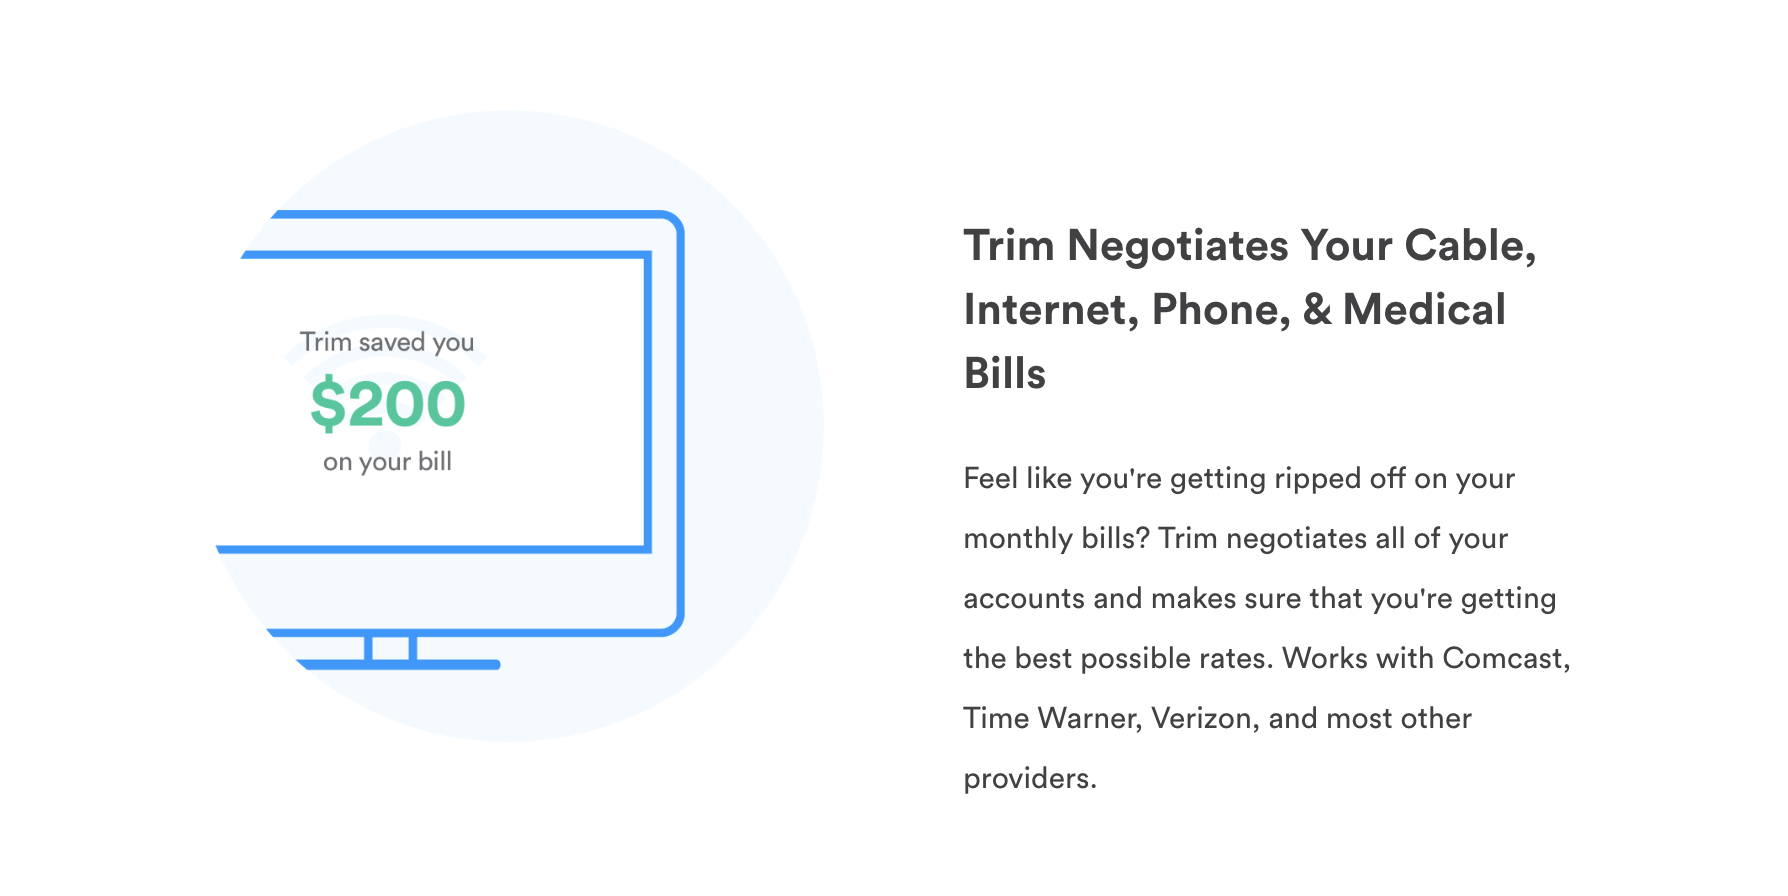 Computer illustration showing that Trim has helped save $200 on a bill